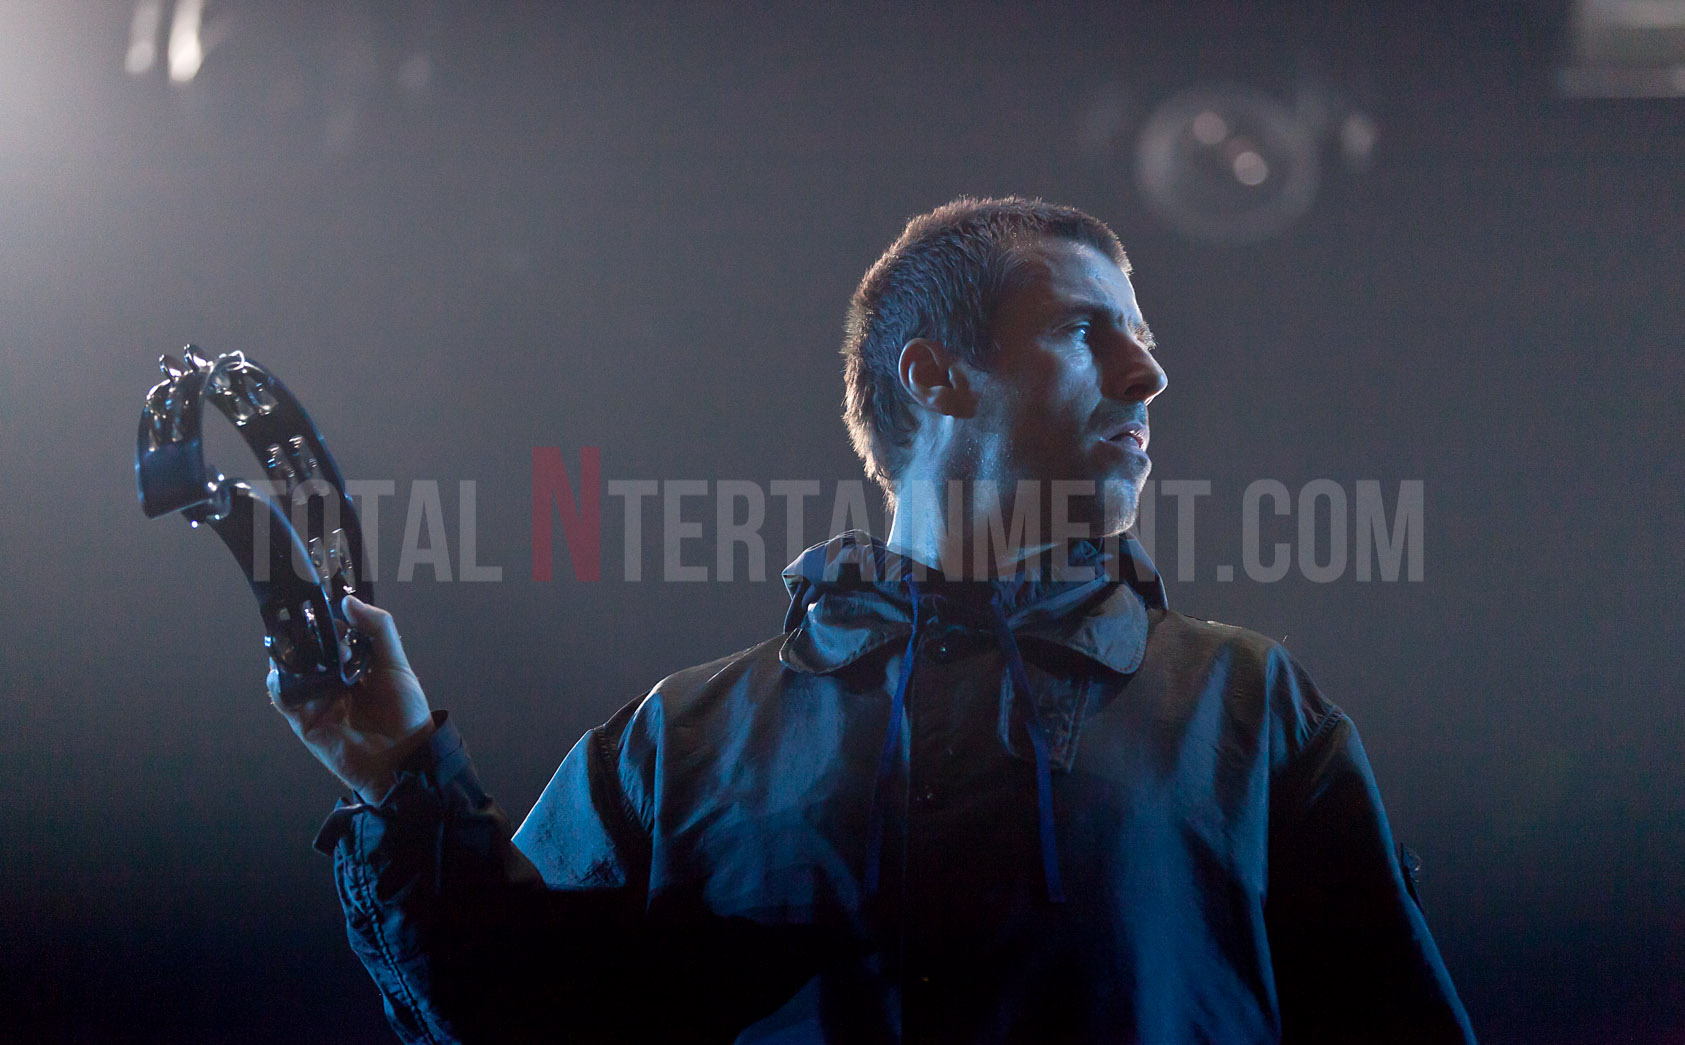 Liam Gallagher's wild homecoming at Manchester Arena